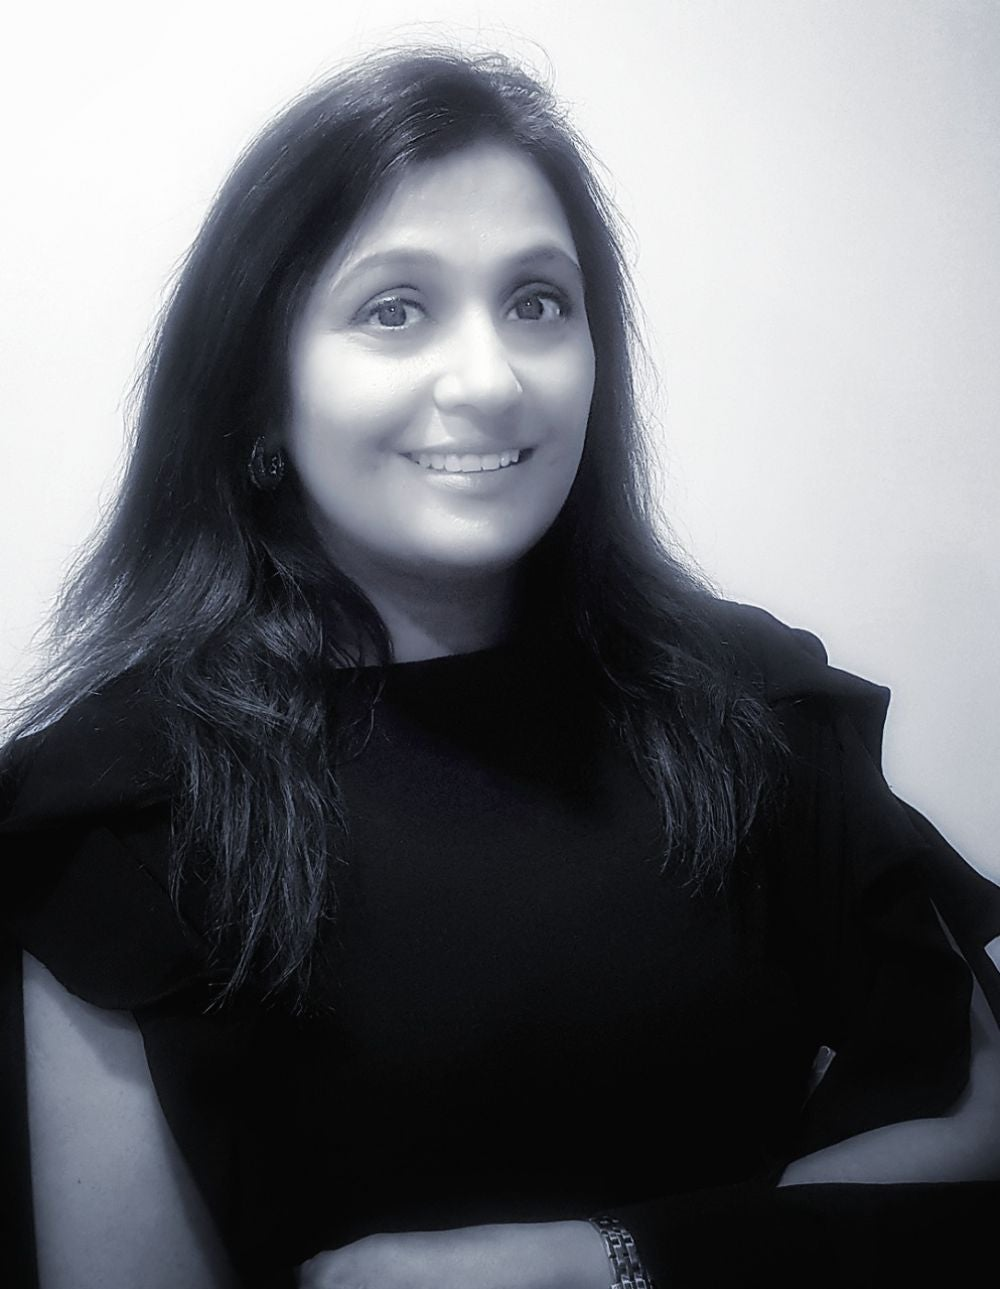 Mona Jalota, Founder & MD, Krypton Global Investments